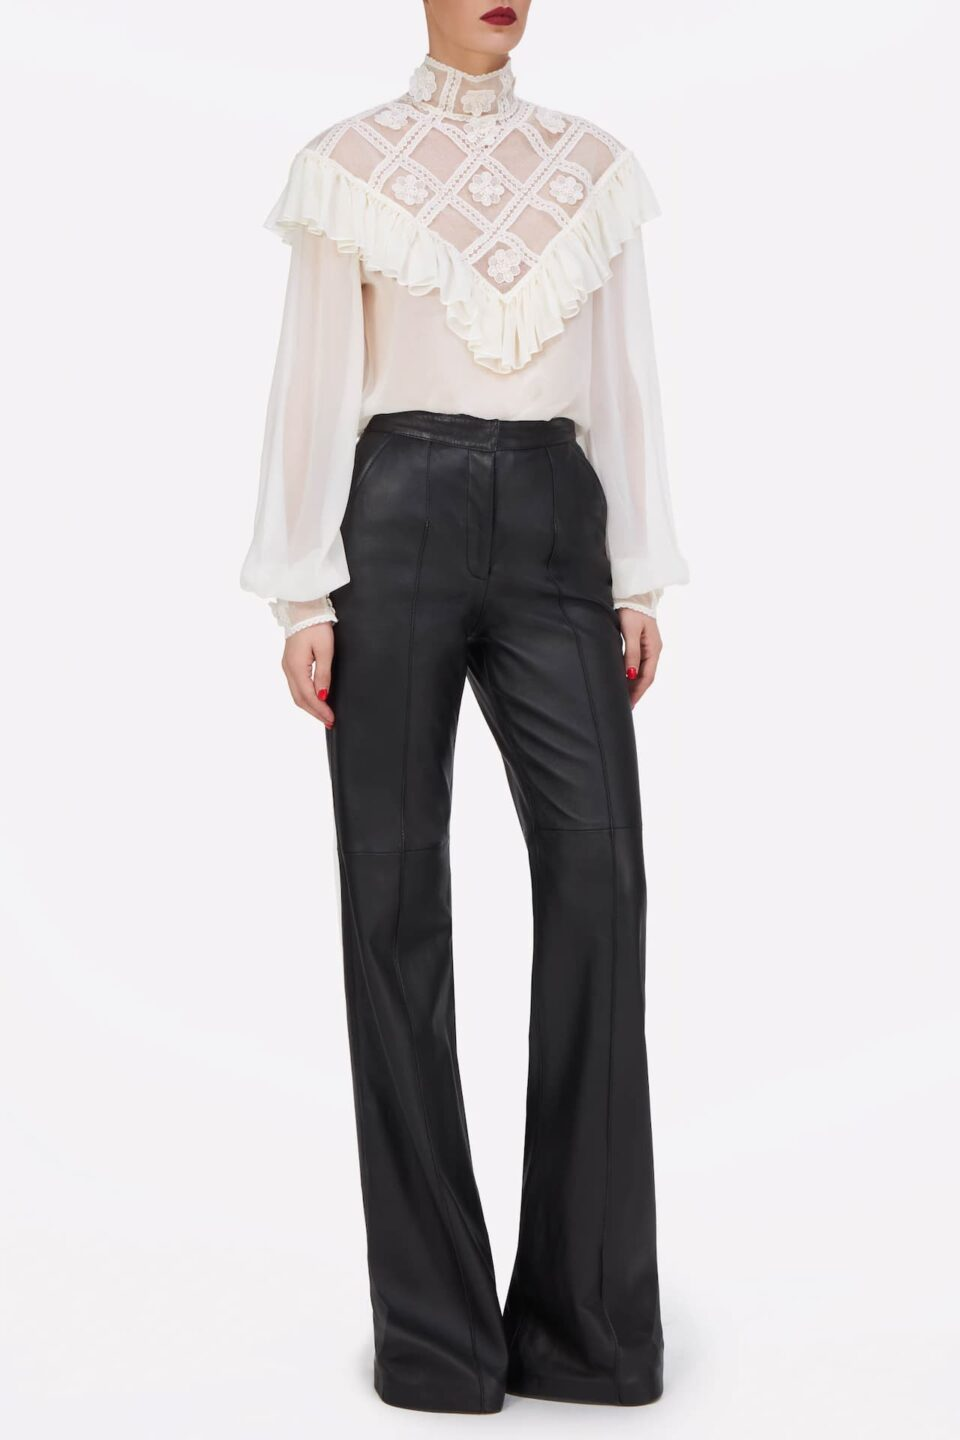 Elsie PR2162 Silk Chiffon Blouse with Ruffled Illusion Neckline & Embroidered Details || Denie PR2151 Soft Lamb-SkinLeather Tailored Straight-Leg Pants with Pintuck Seams